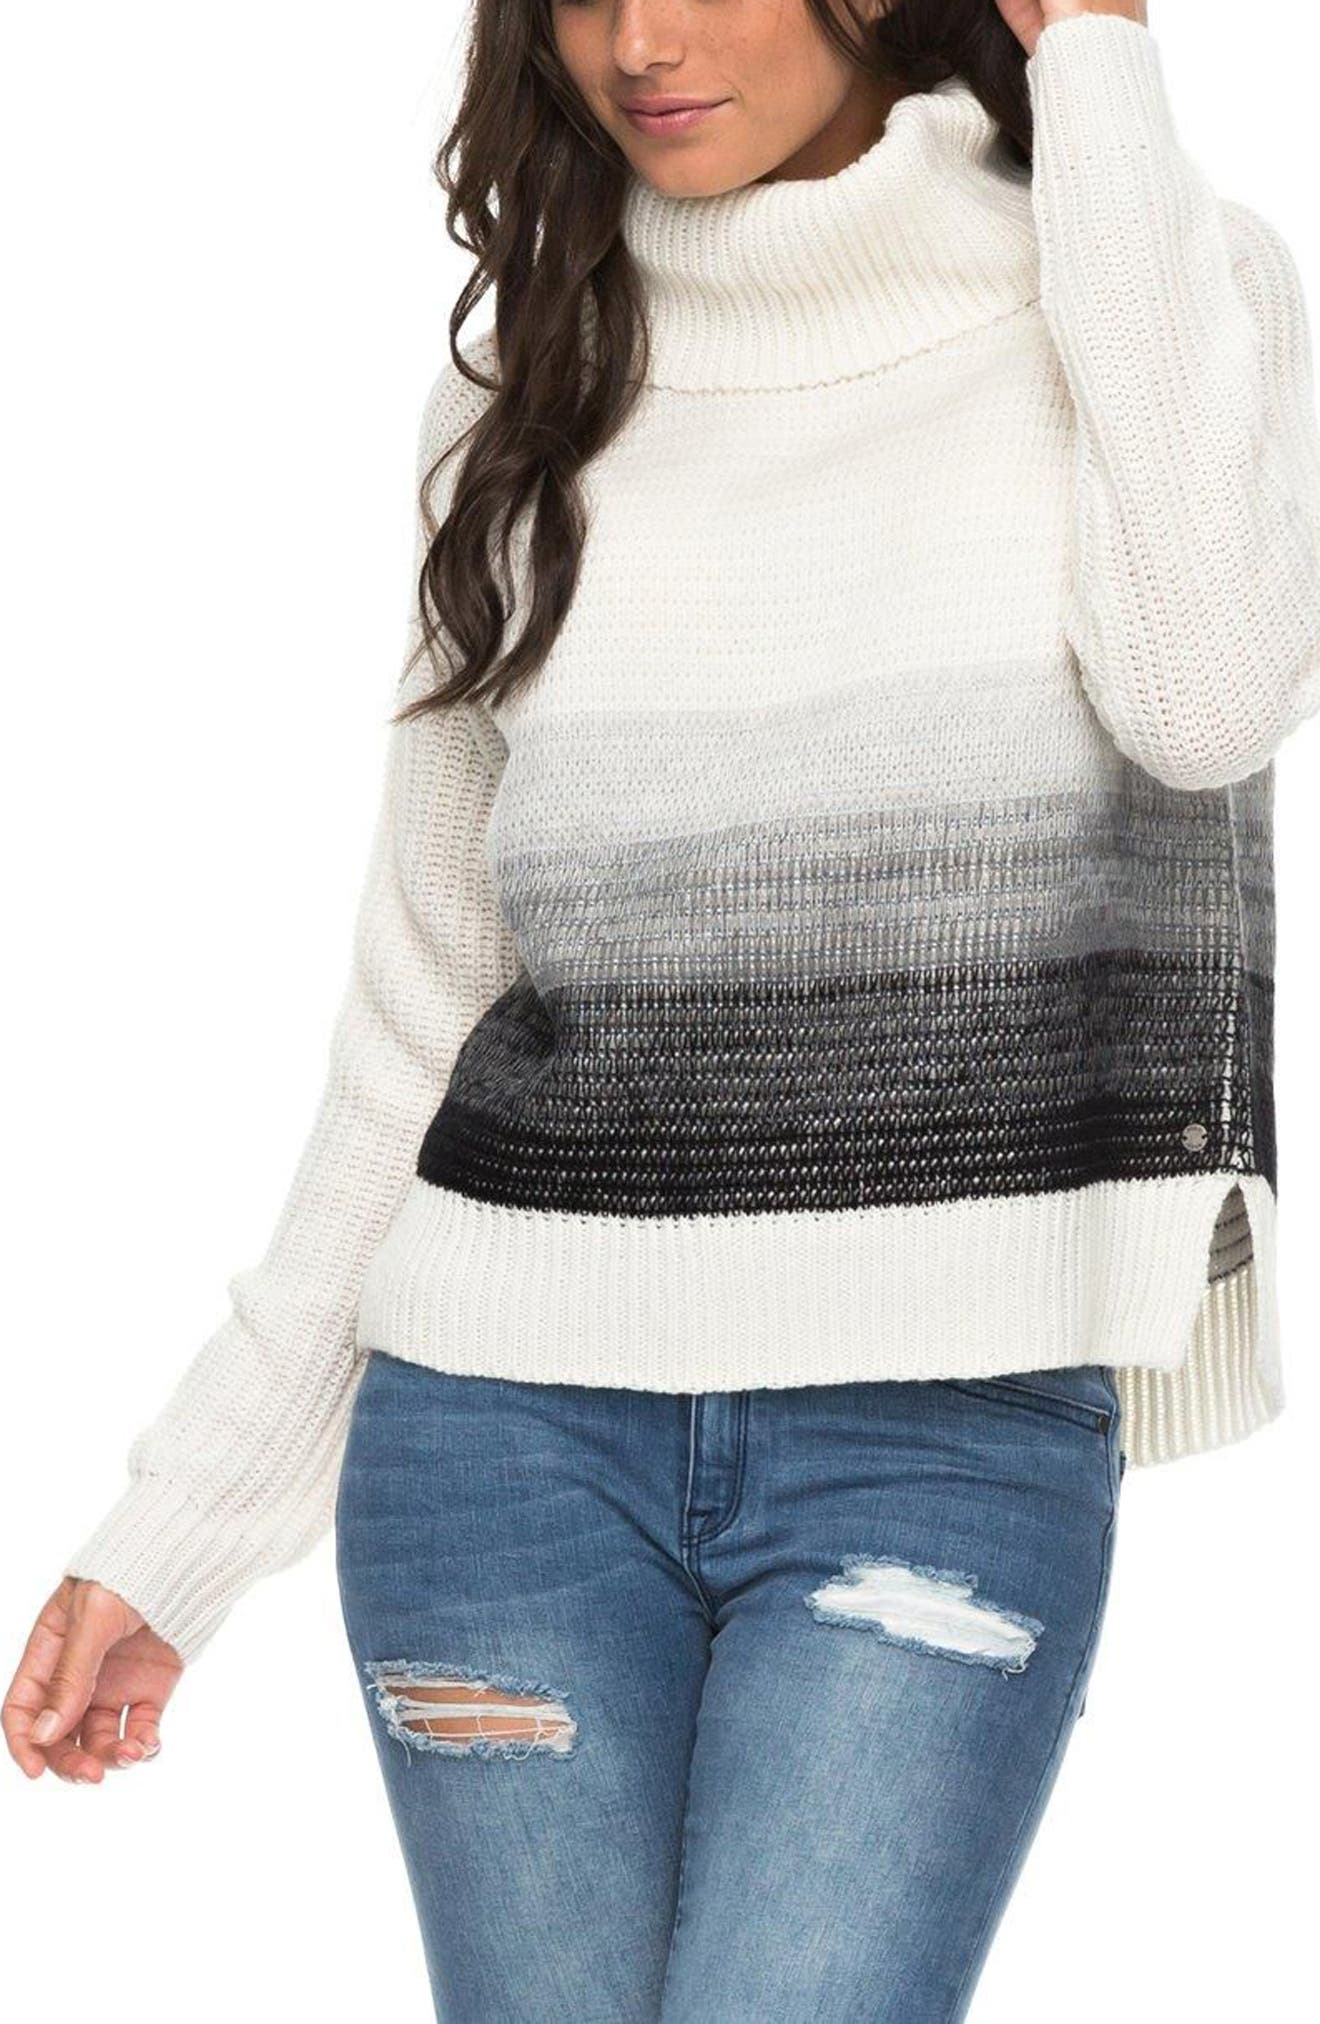 Roxy Morning Sun Sweater